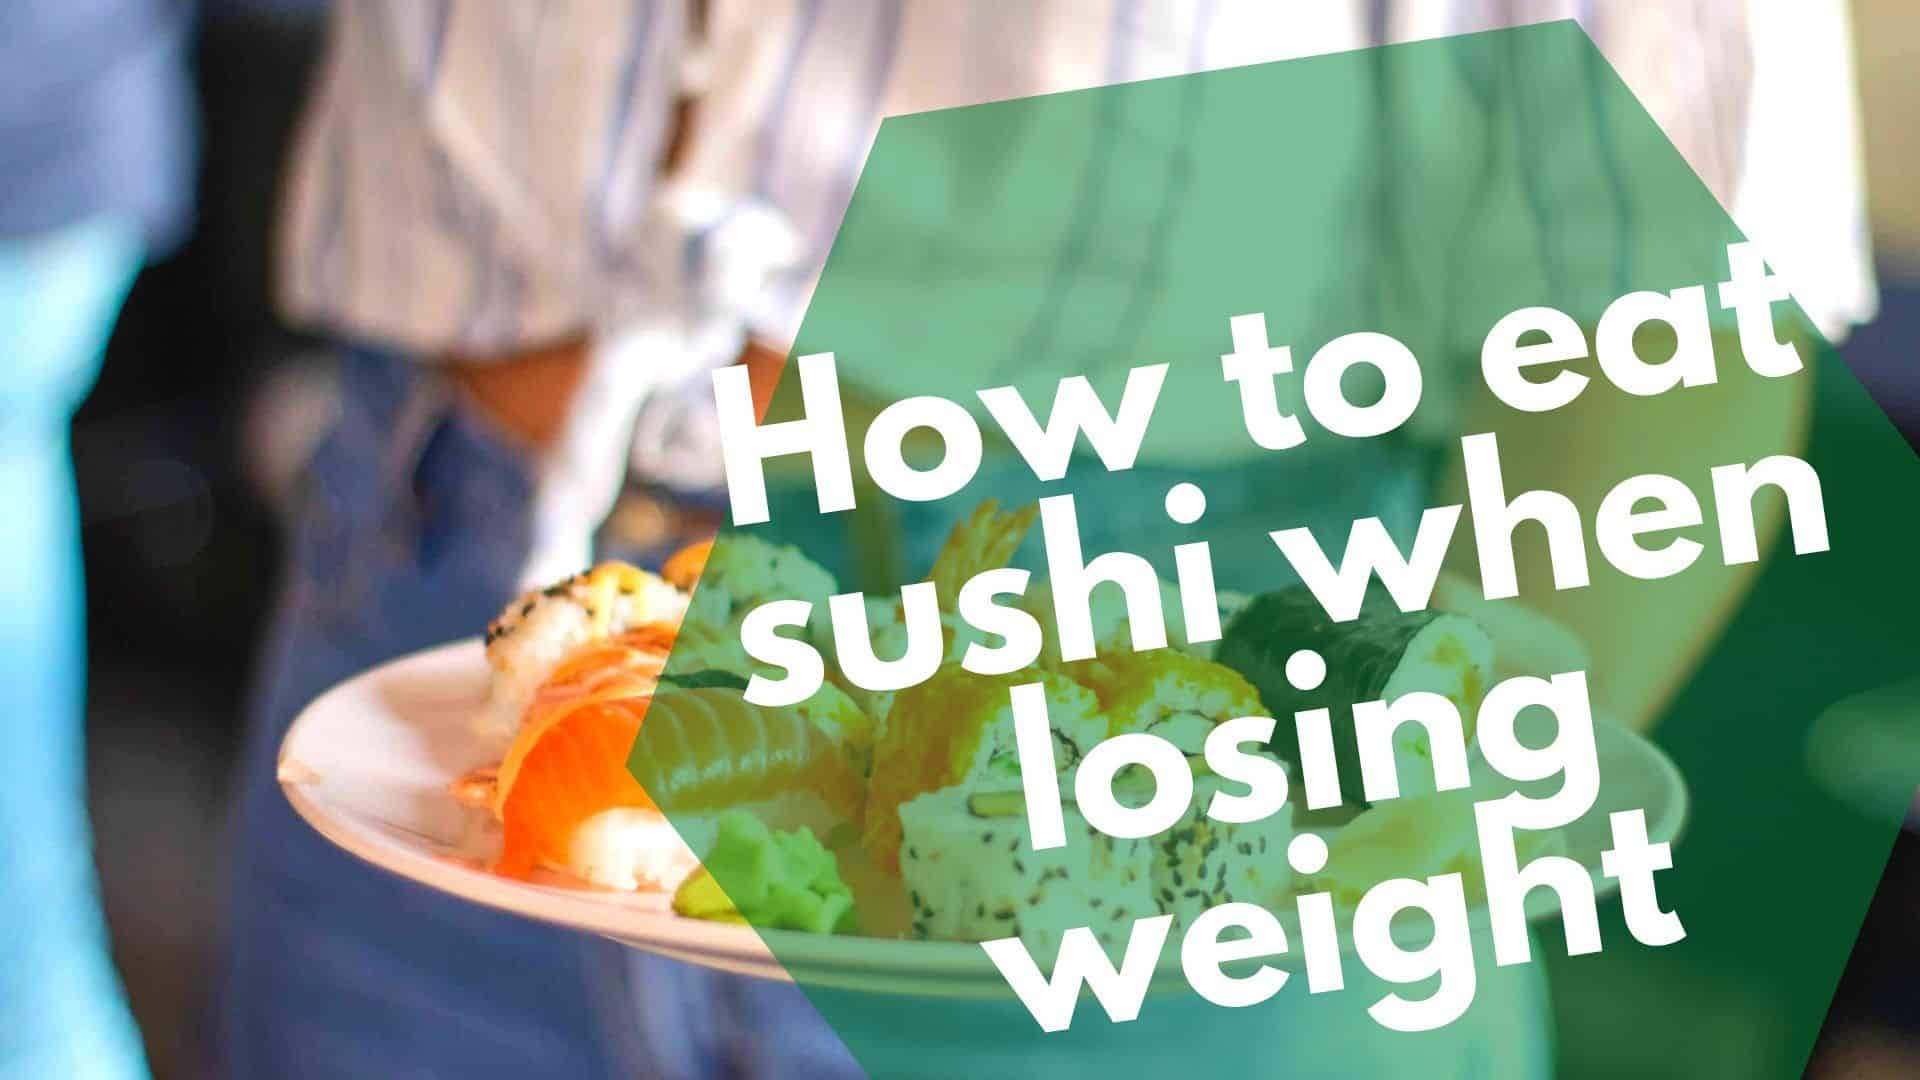 How to eat sushi when losing weight